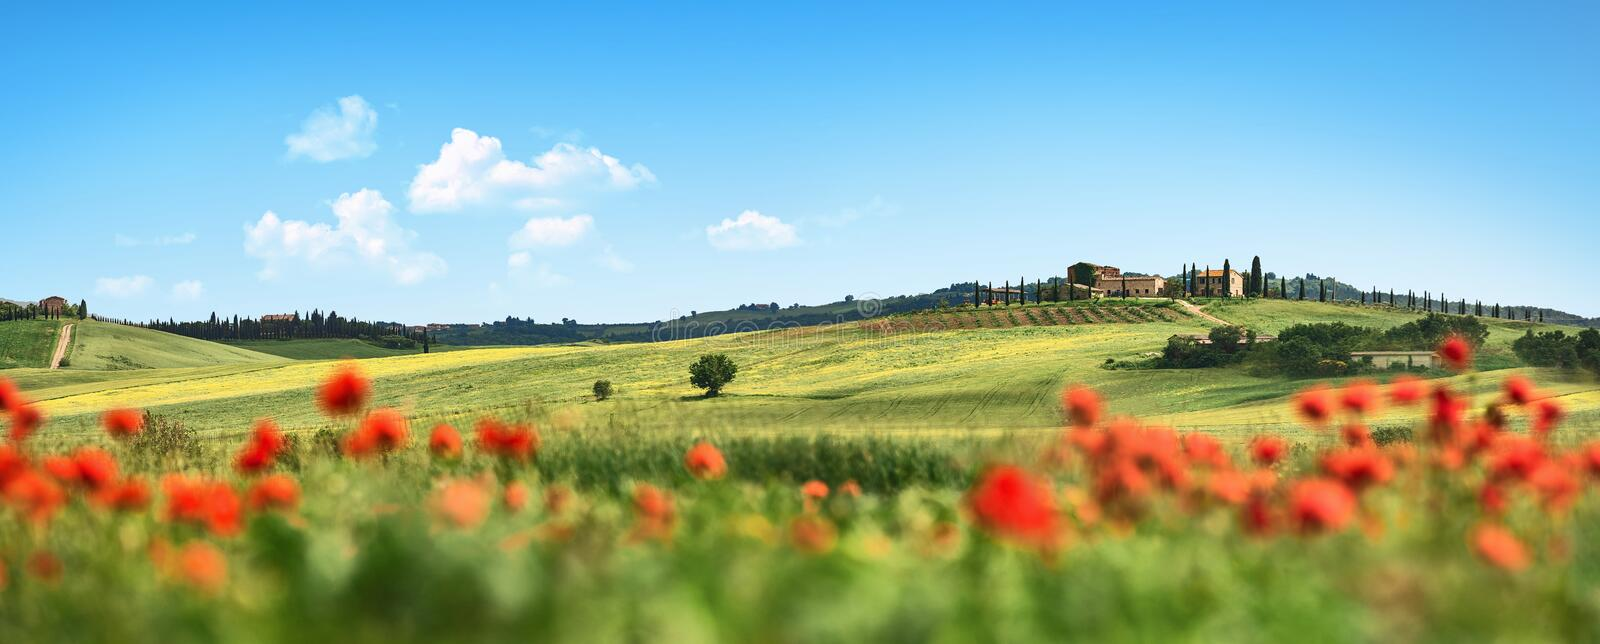 Beautiful Landscape with Poppies Flowers. Italy Tuscany stock photography